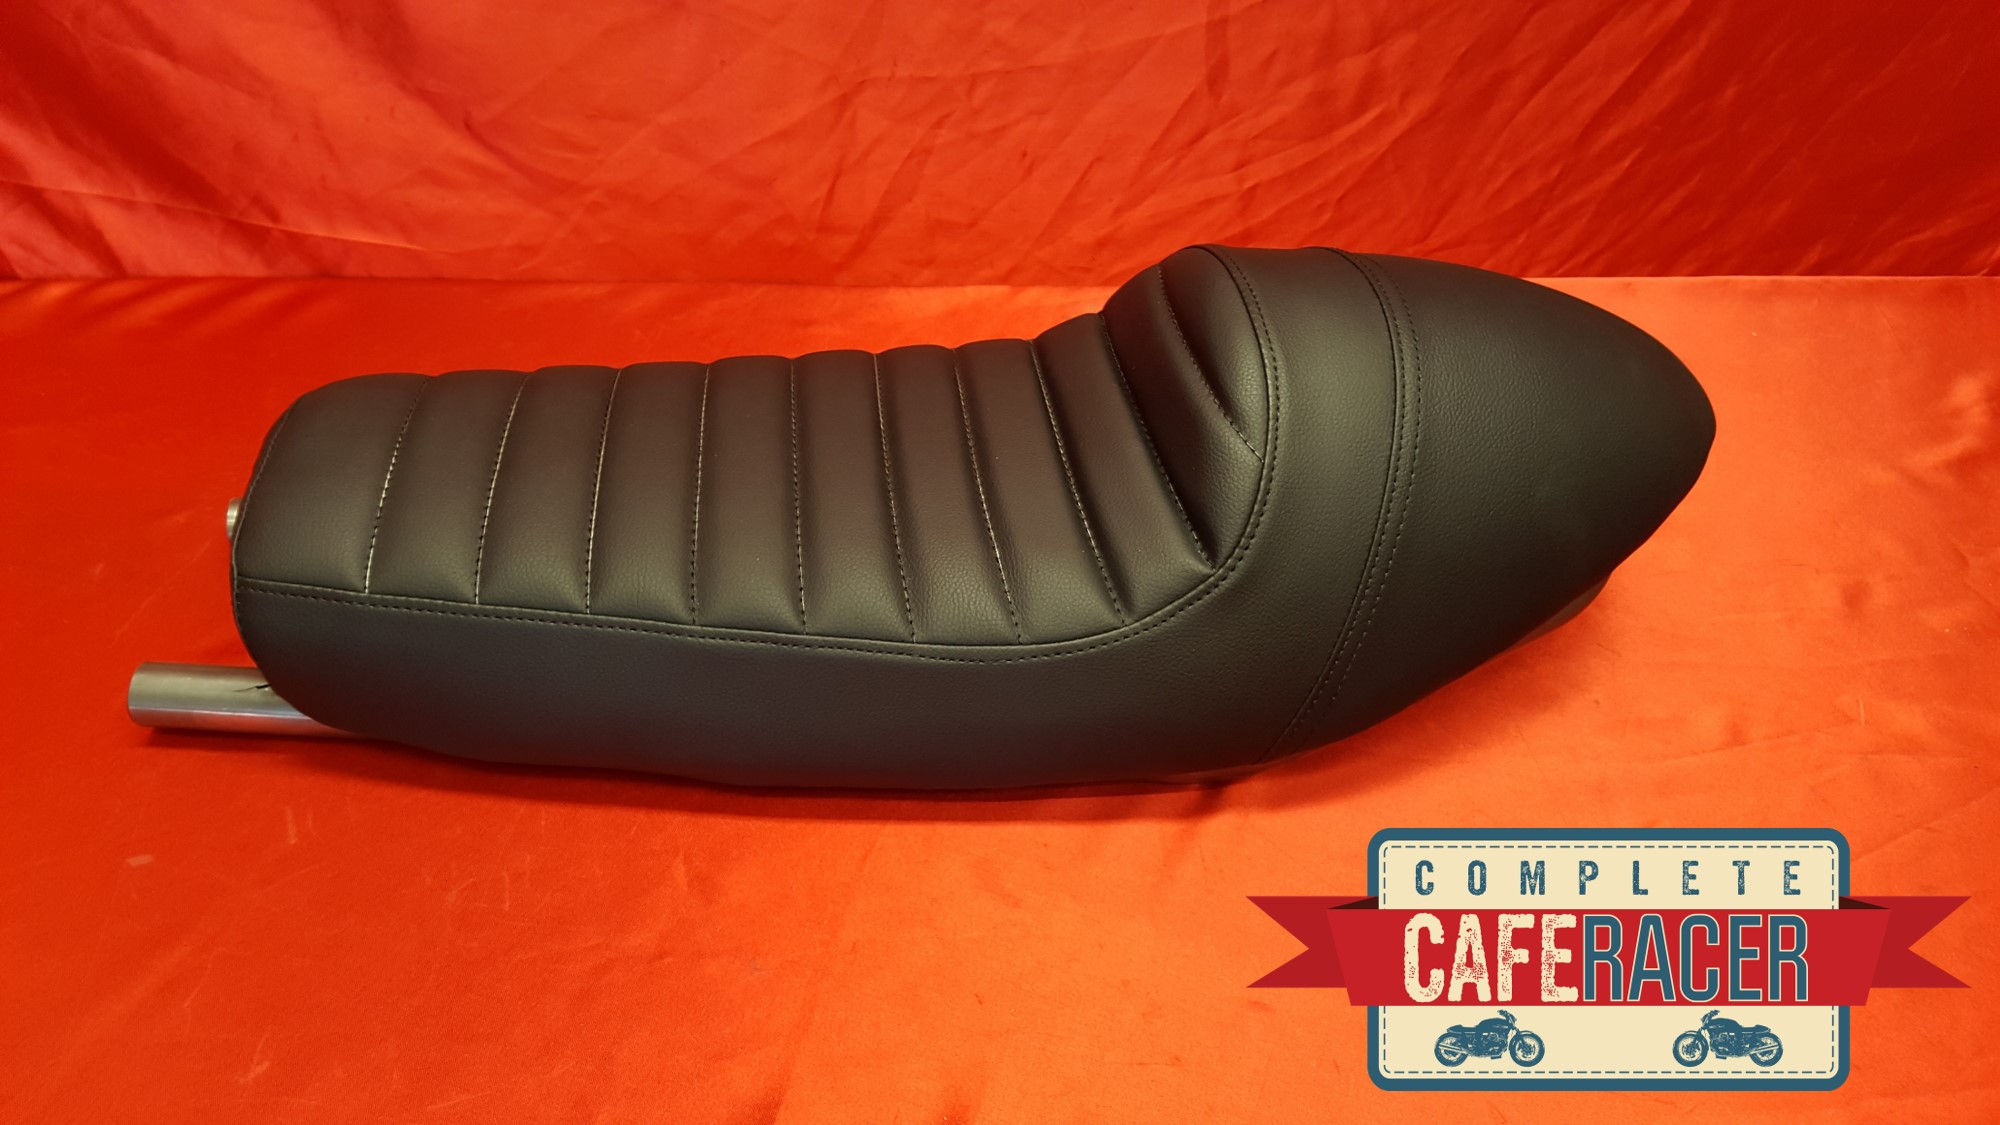 (LS1) CAFE RACER SEAT FINISHED IN BLACK LEATHERETTE SEAT WITH STEEL SEAT HOOP